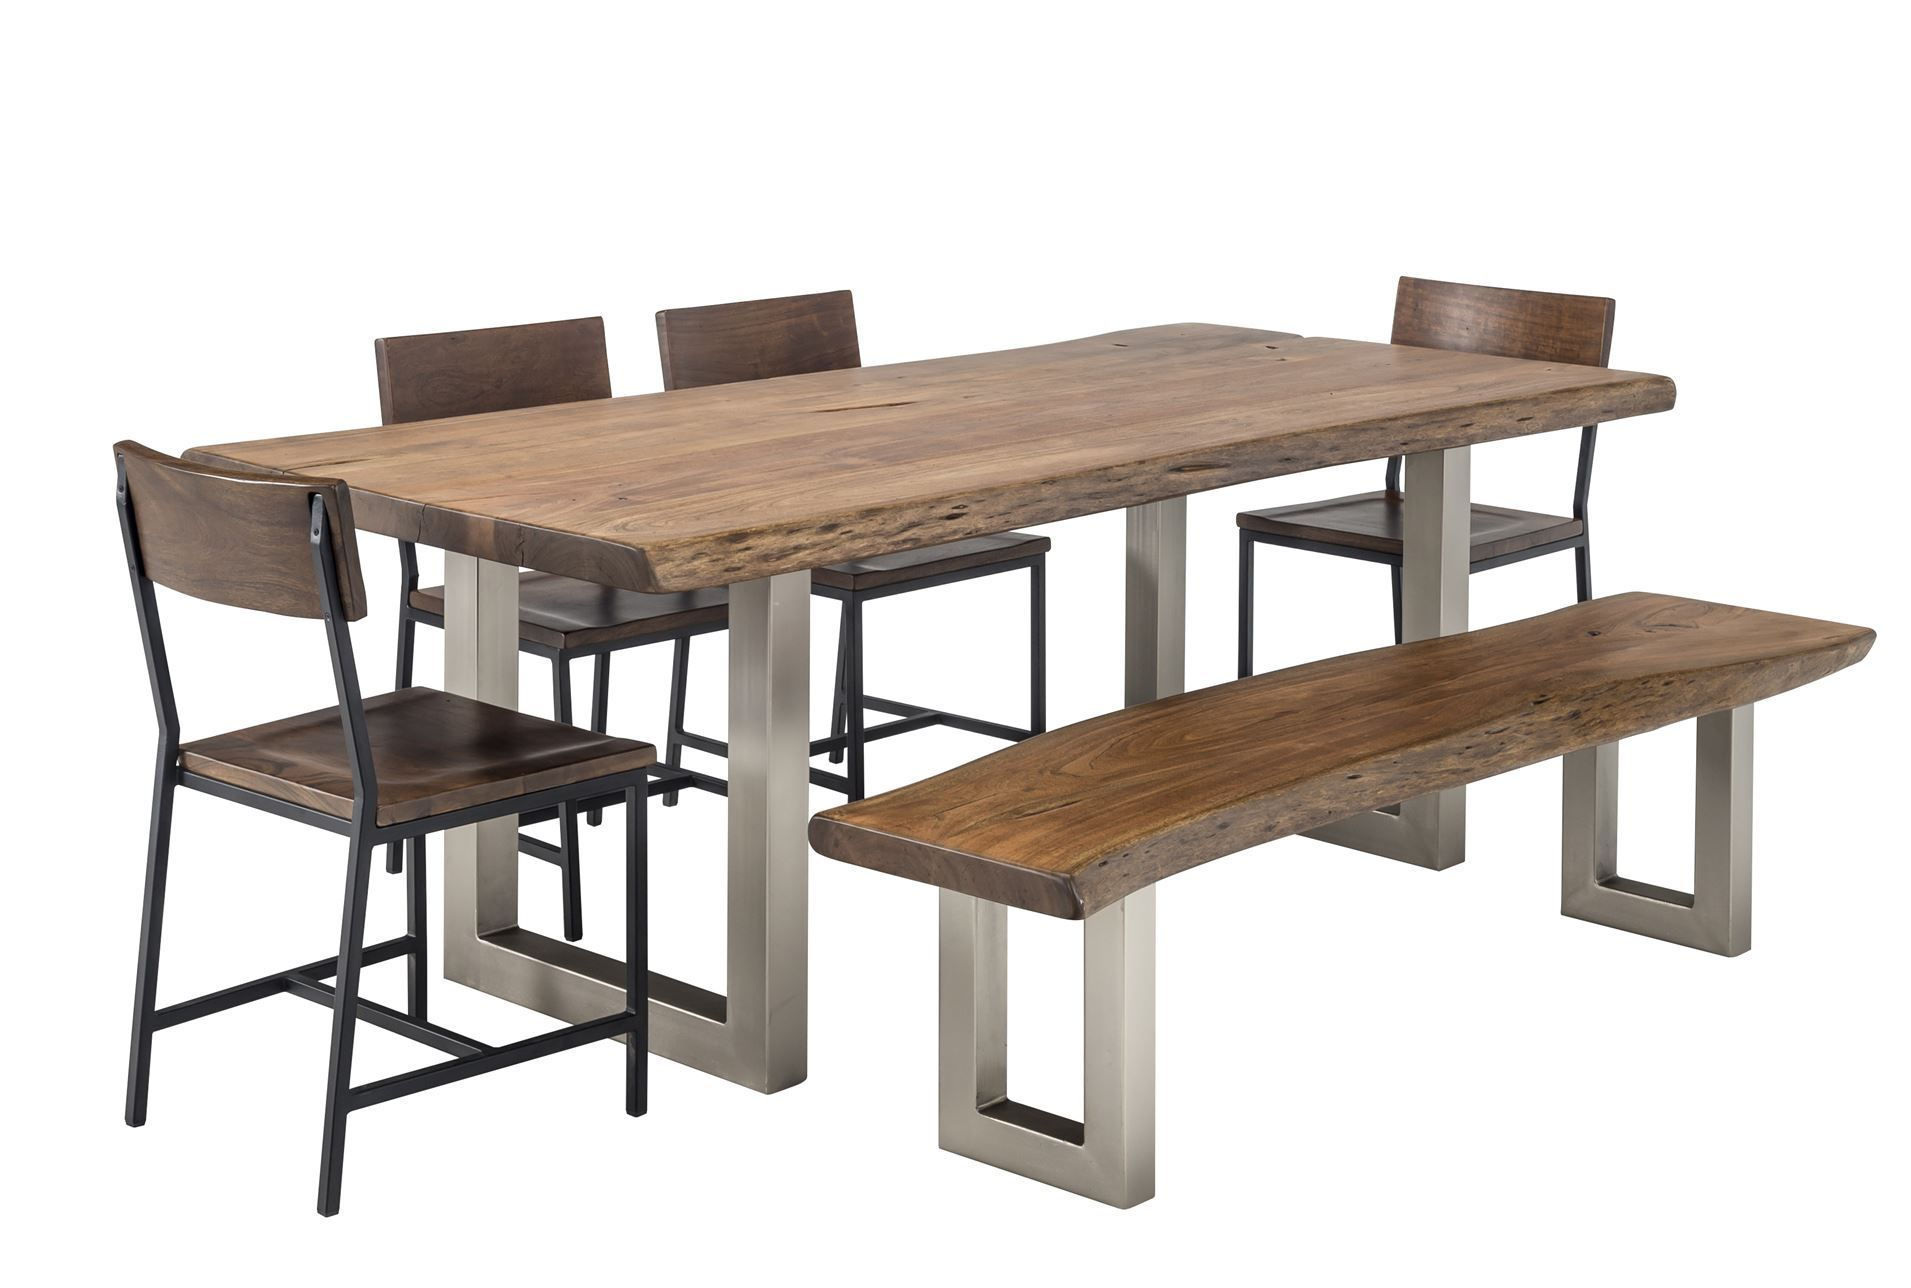 Oleander 82 Inch 6 Piece Dining Set from Living Spaces ...